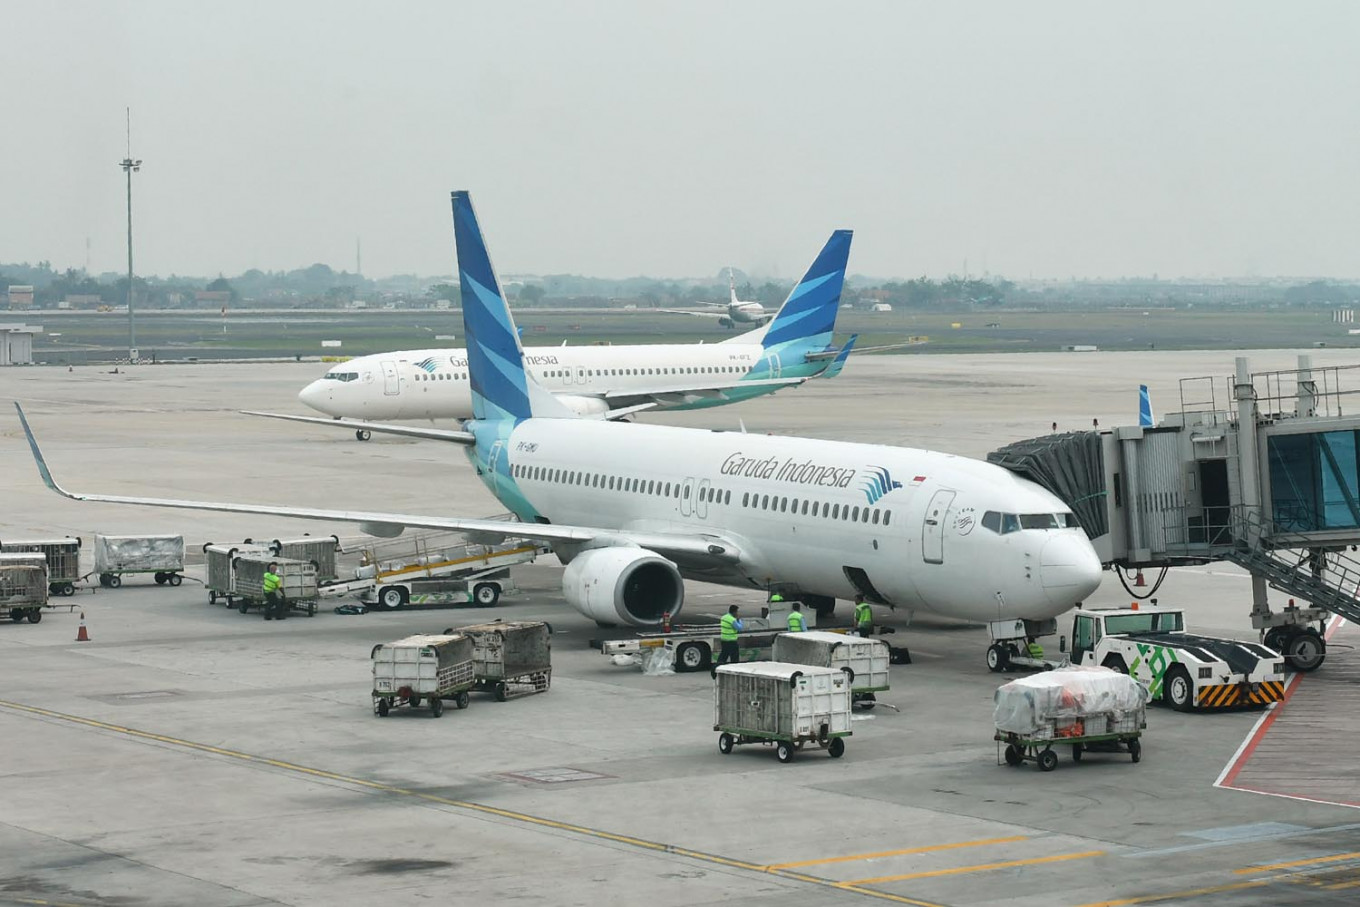 Garuda to require entry permits from Jakarta-bound passengers